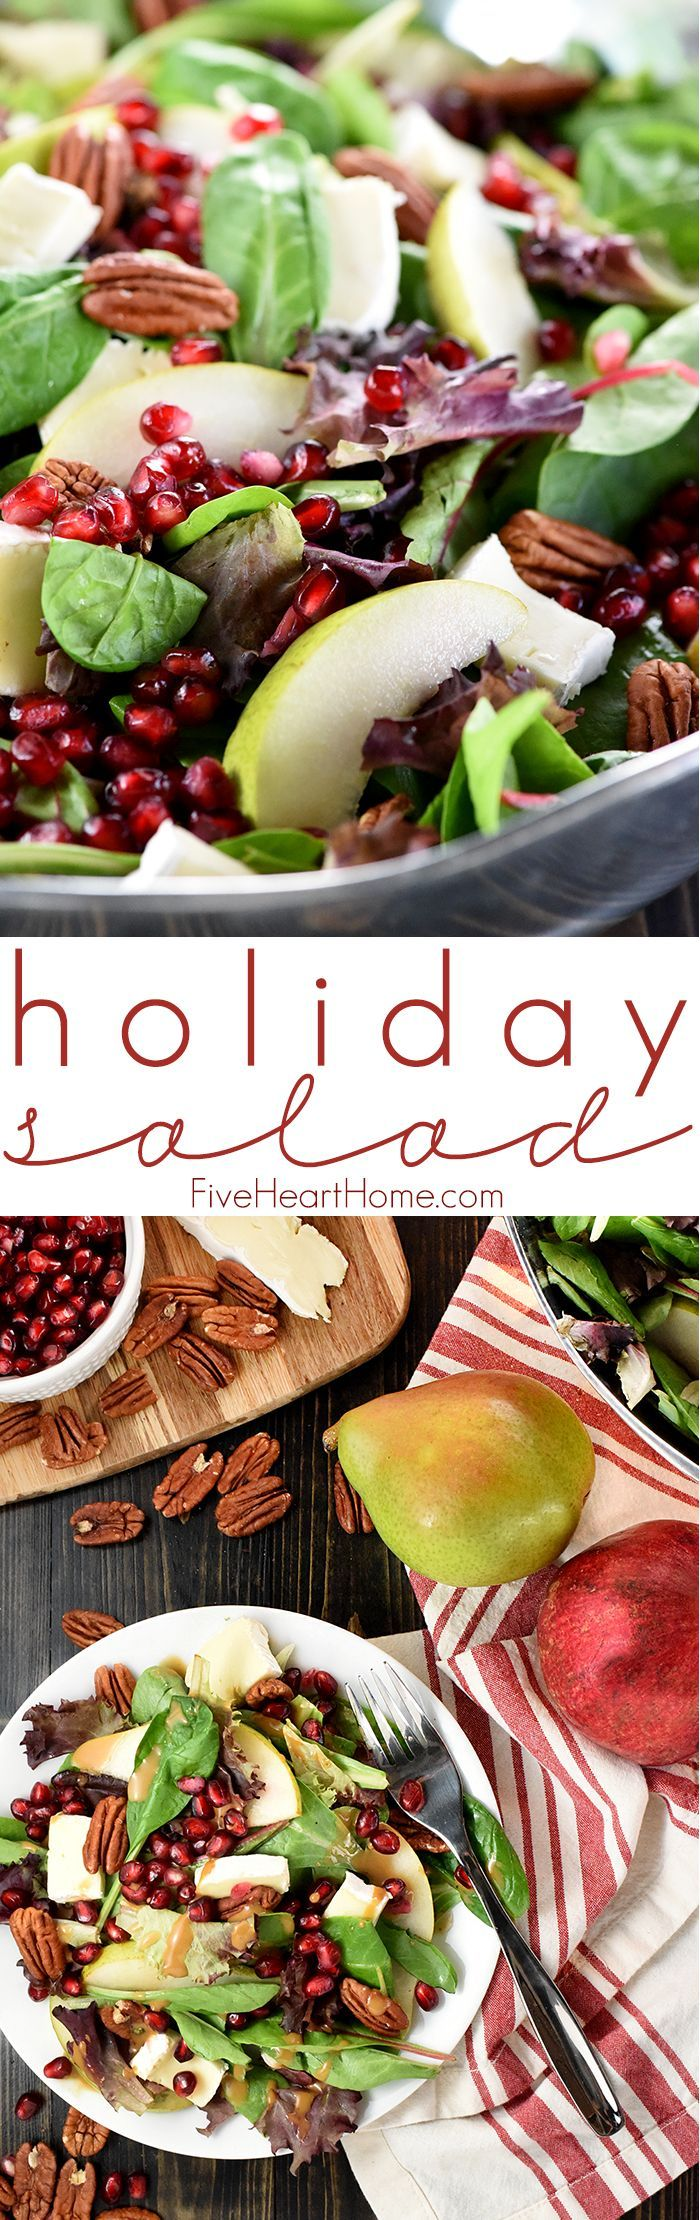 This gorgeous Pomegranate, Pear, Pecan, & Brie Salad with Homemade Balsamic Vinaigrette is loaded with vibrant colors and flavors. It's great for a Christmas dinner party.